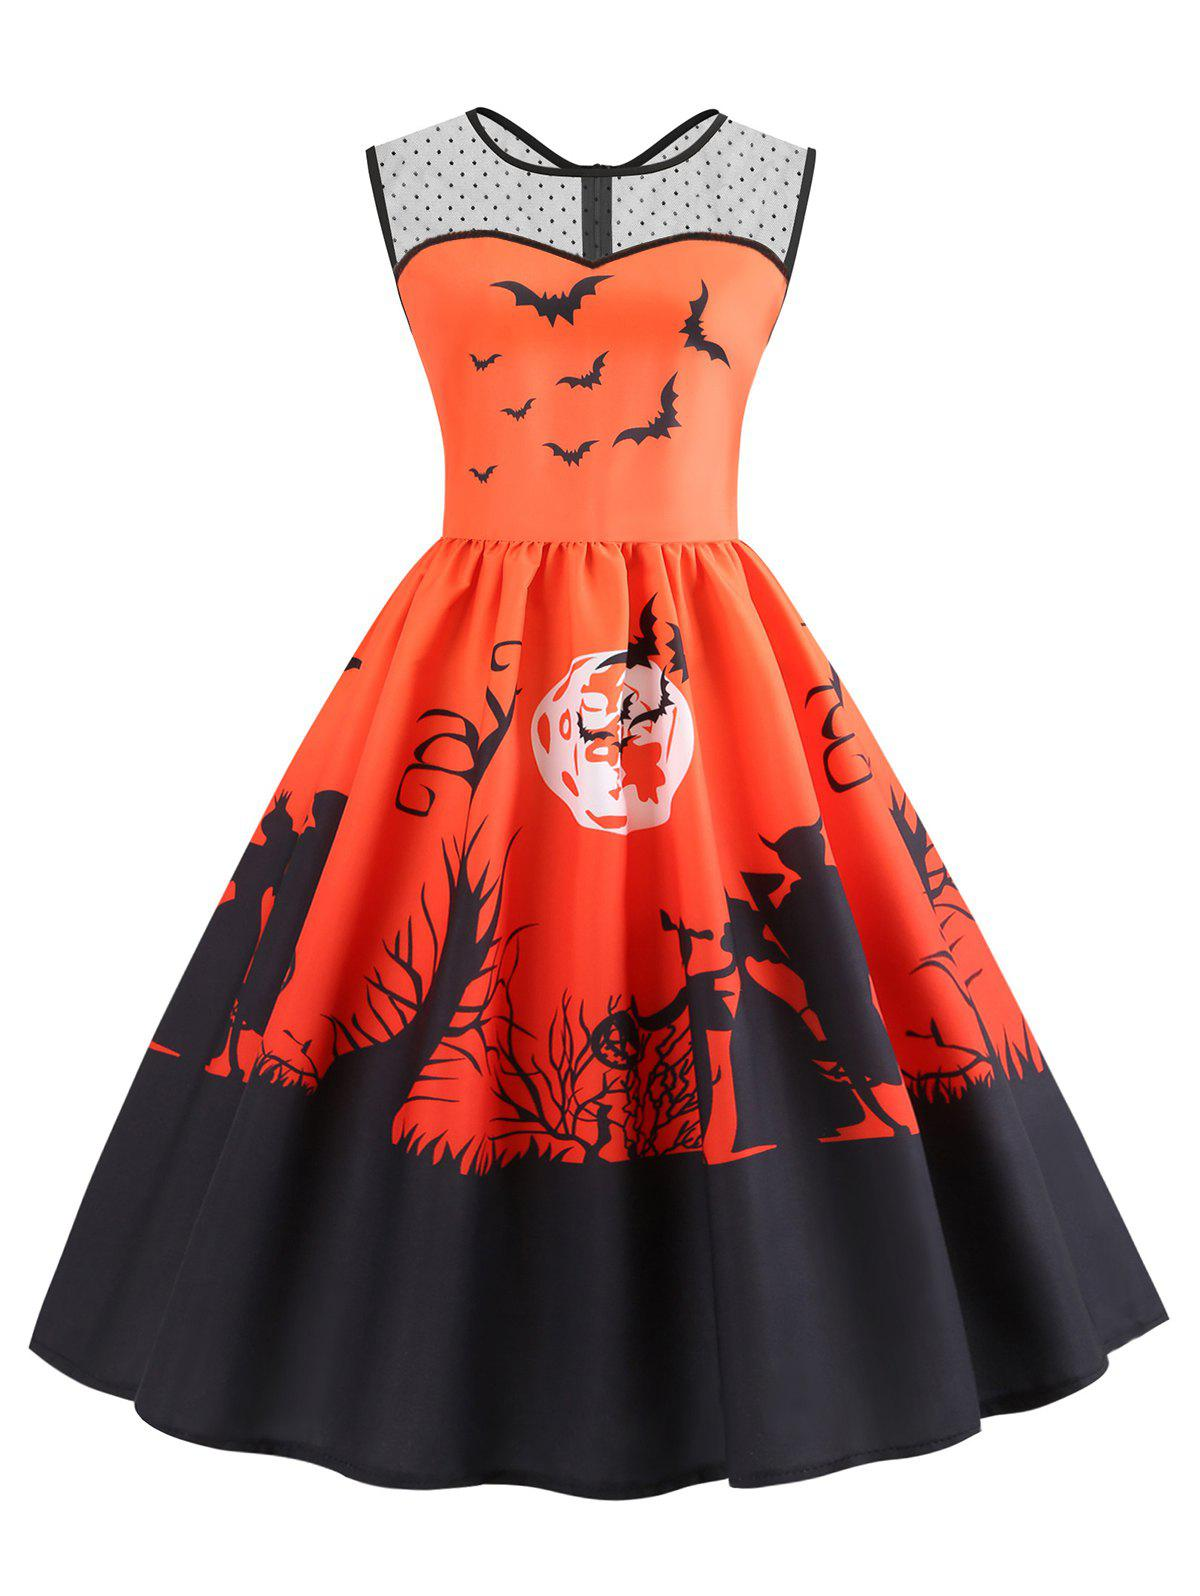 Mesh Panel Bat Print Flared Halloween Dress